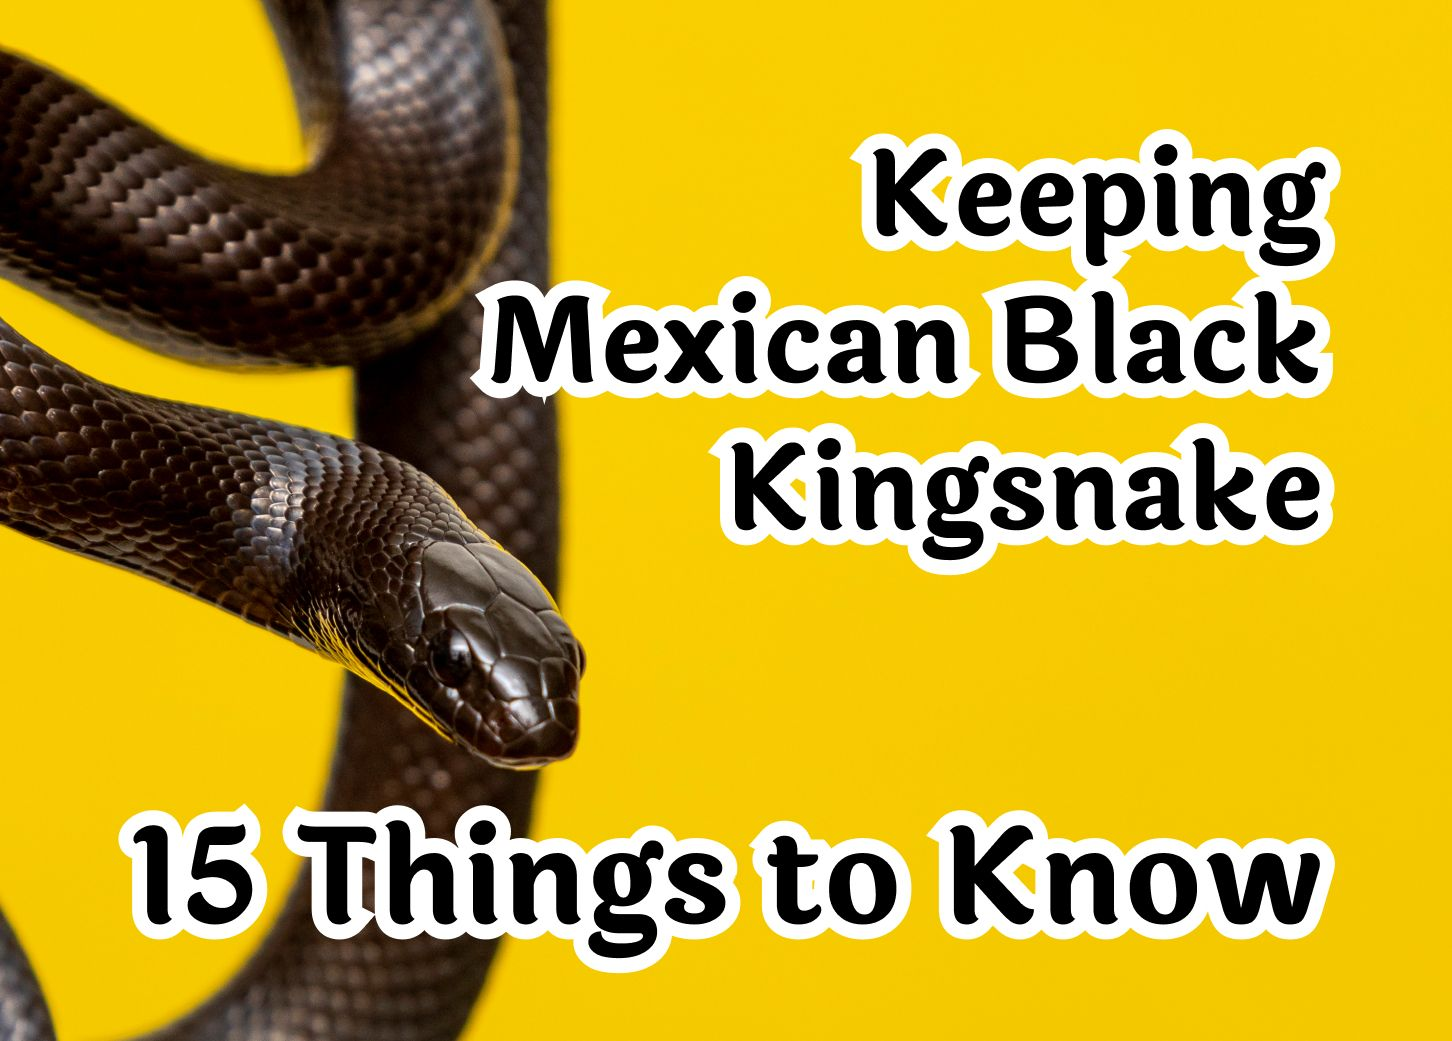 How to Keep Mexican Black Kingsnake – 15 Crucial Things to Know